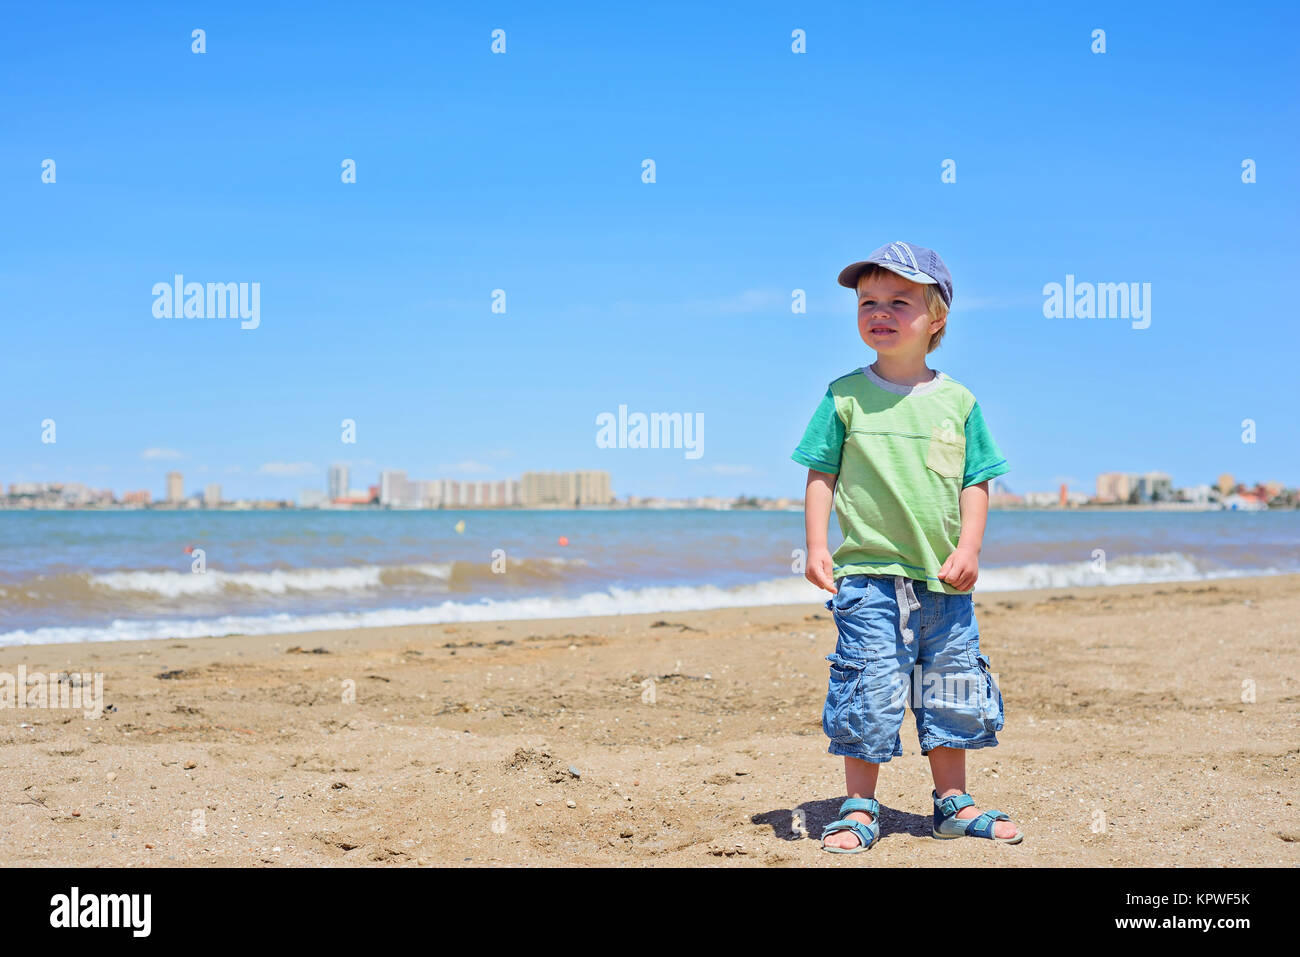 Cute small boy standing on the beach - Stock Image